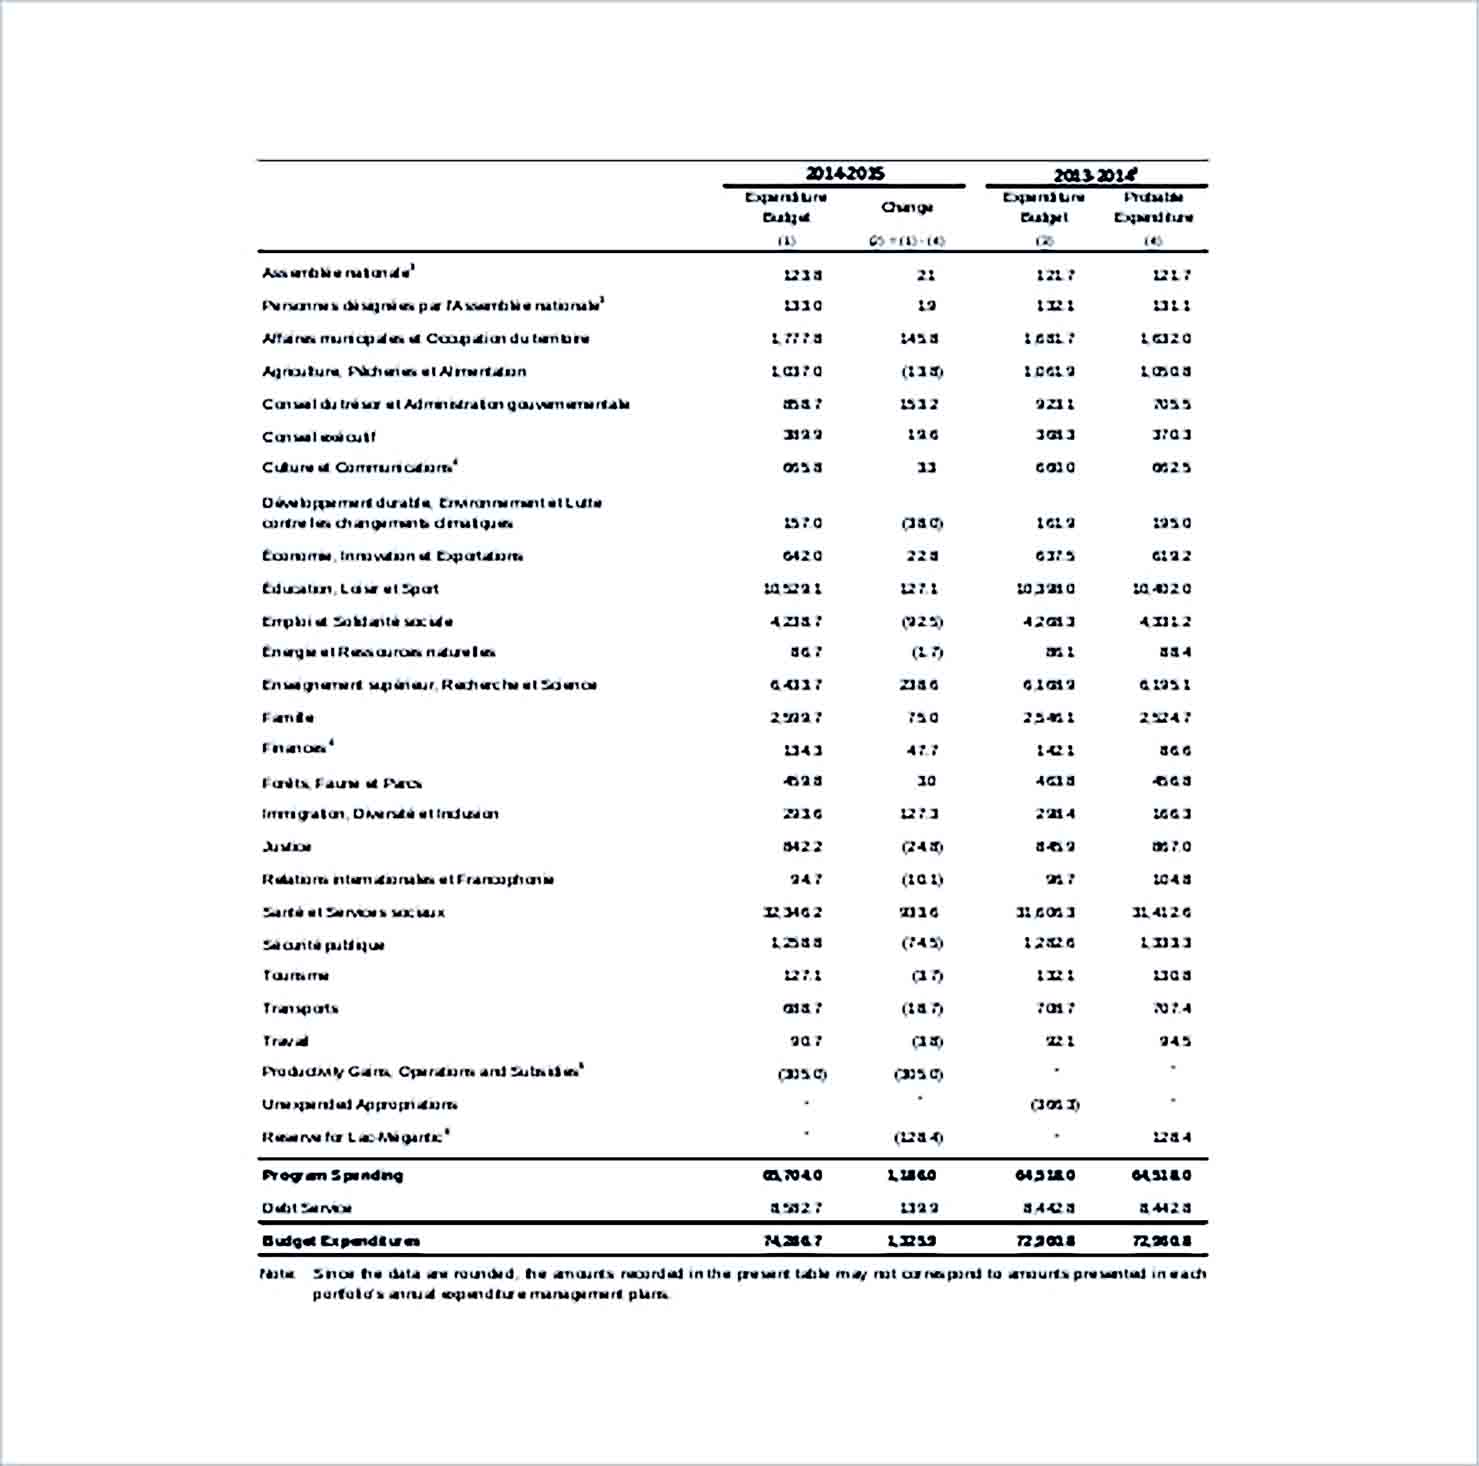 Sample Capital Expenditure Budget Format